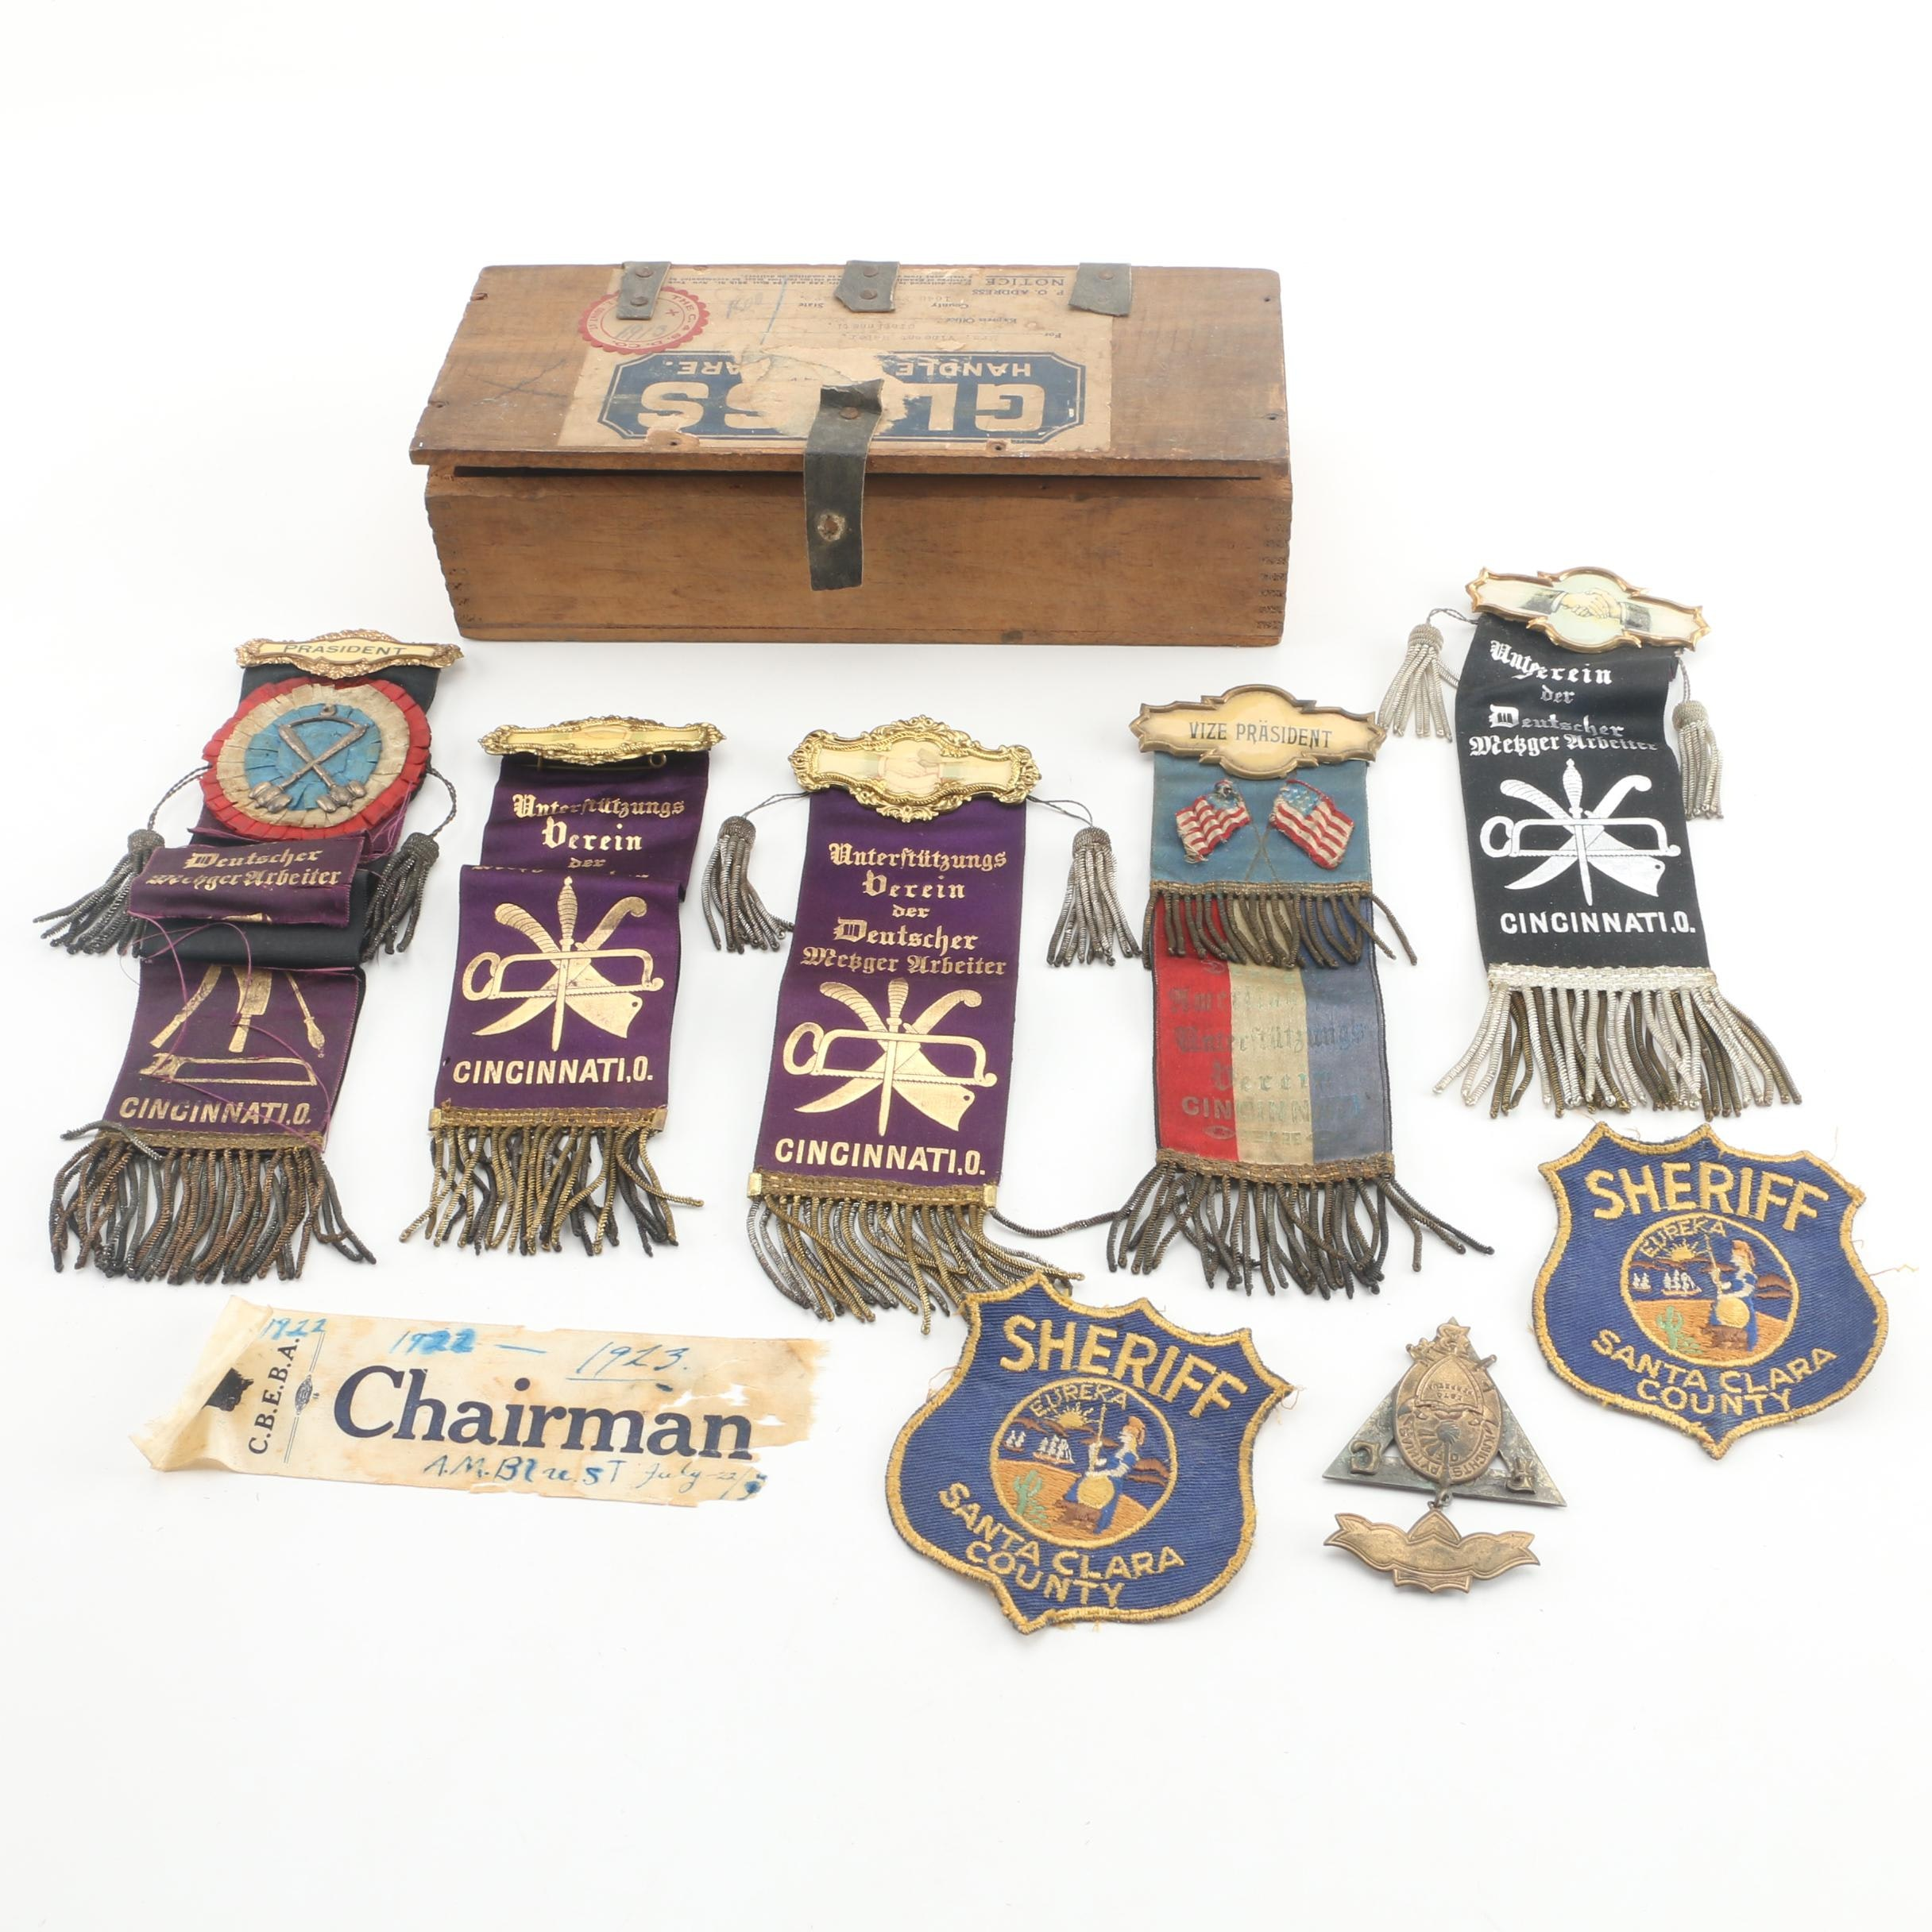 Near Antique Cincinnati German Support Society Ribbons and More